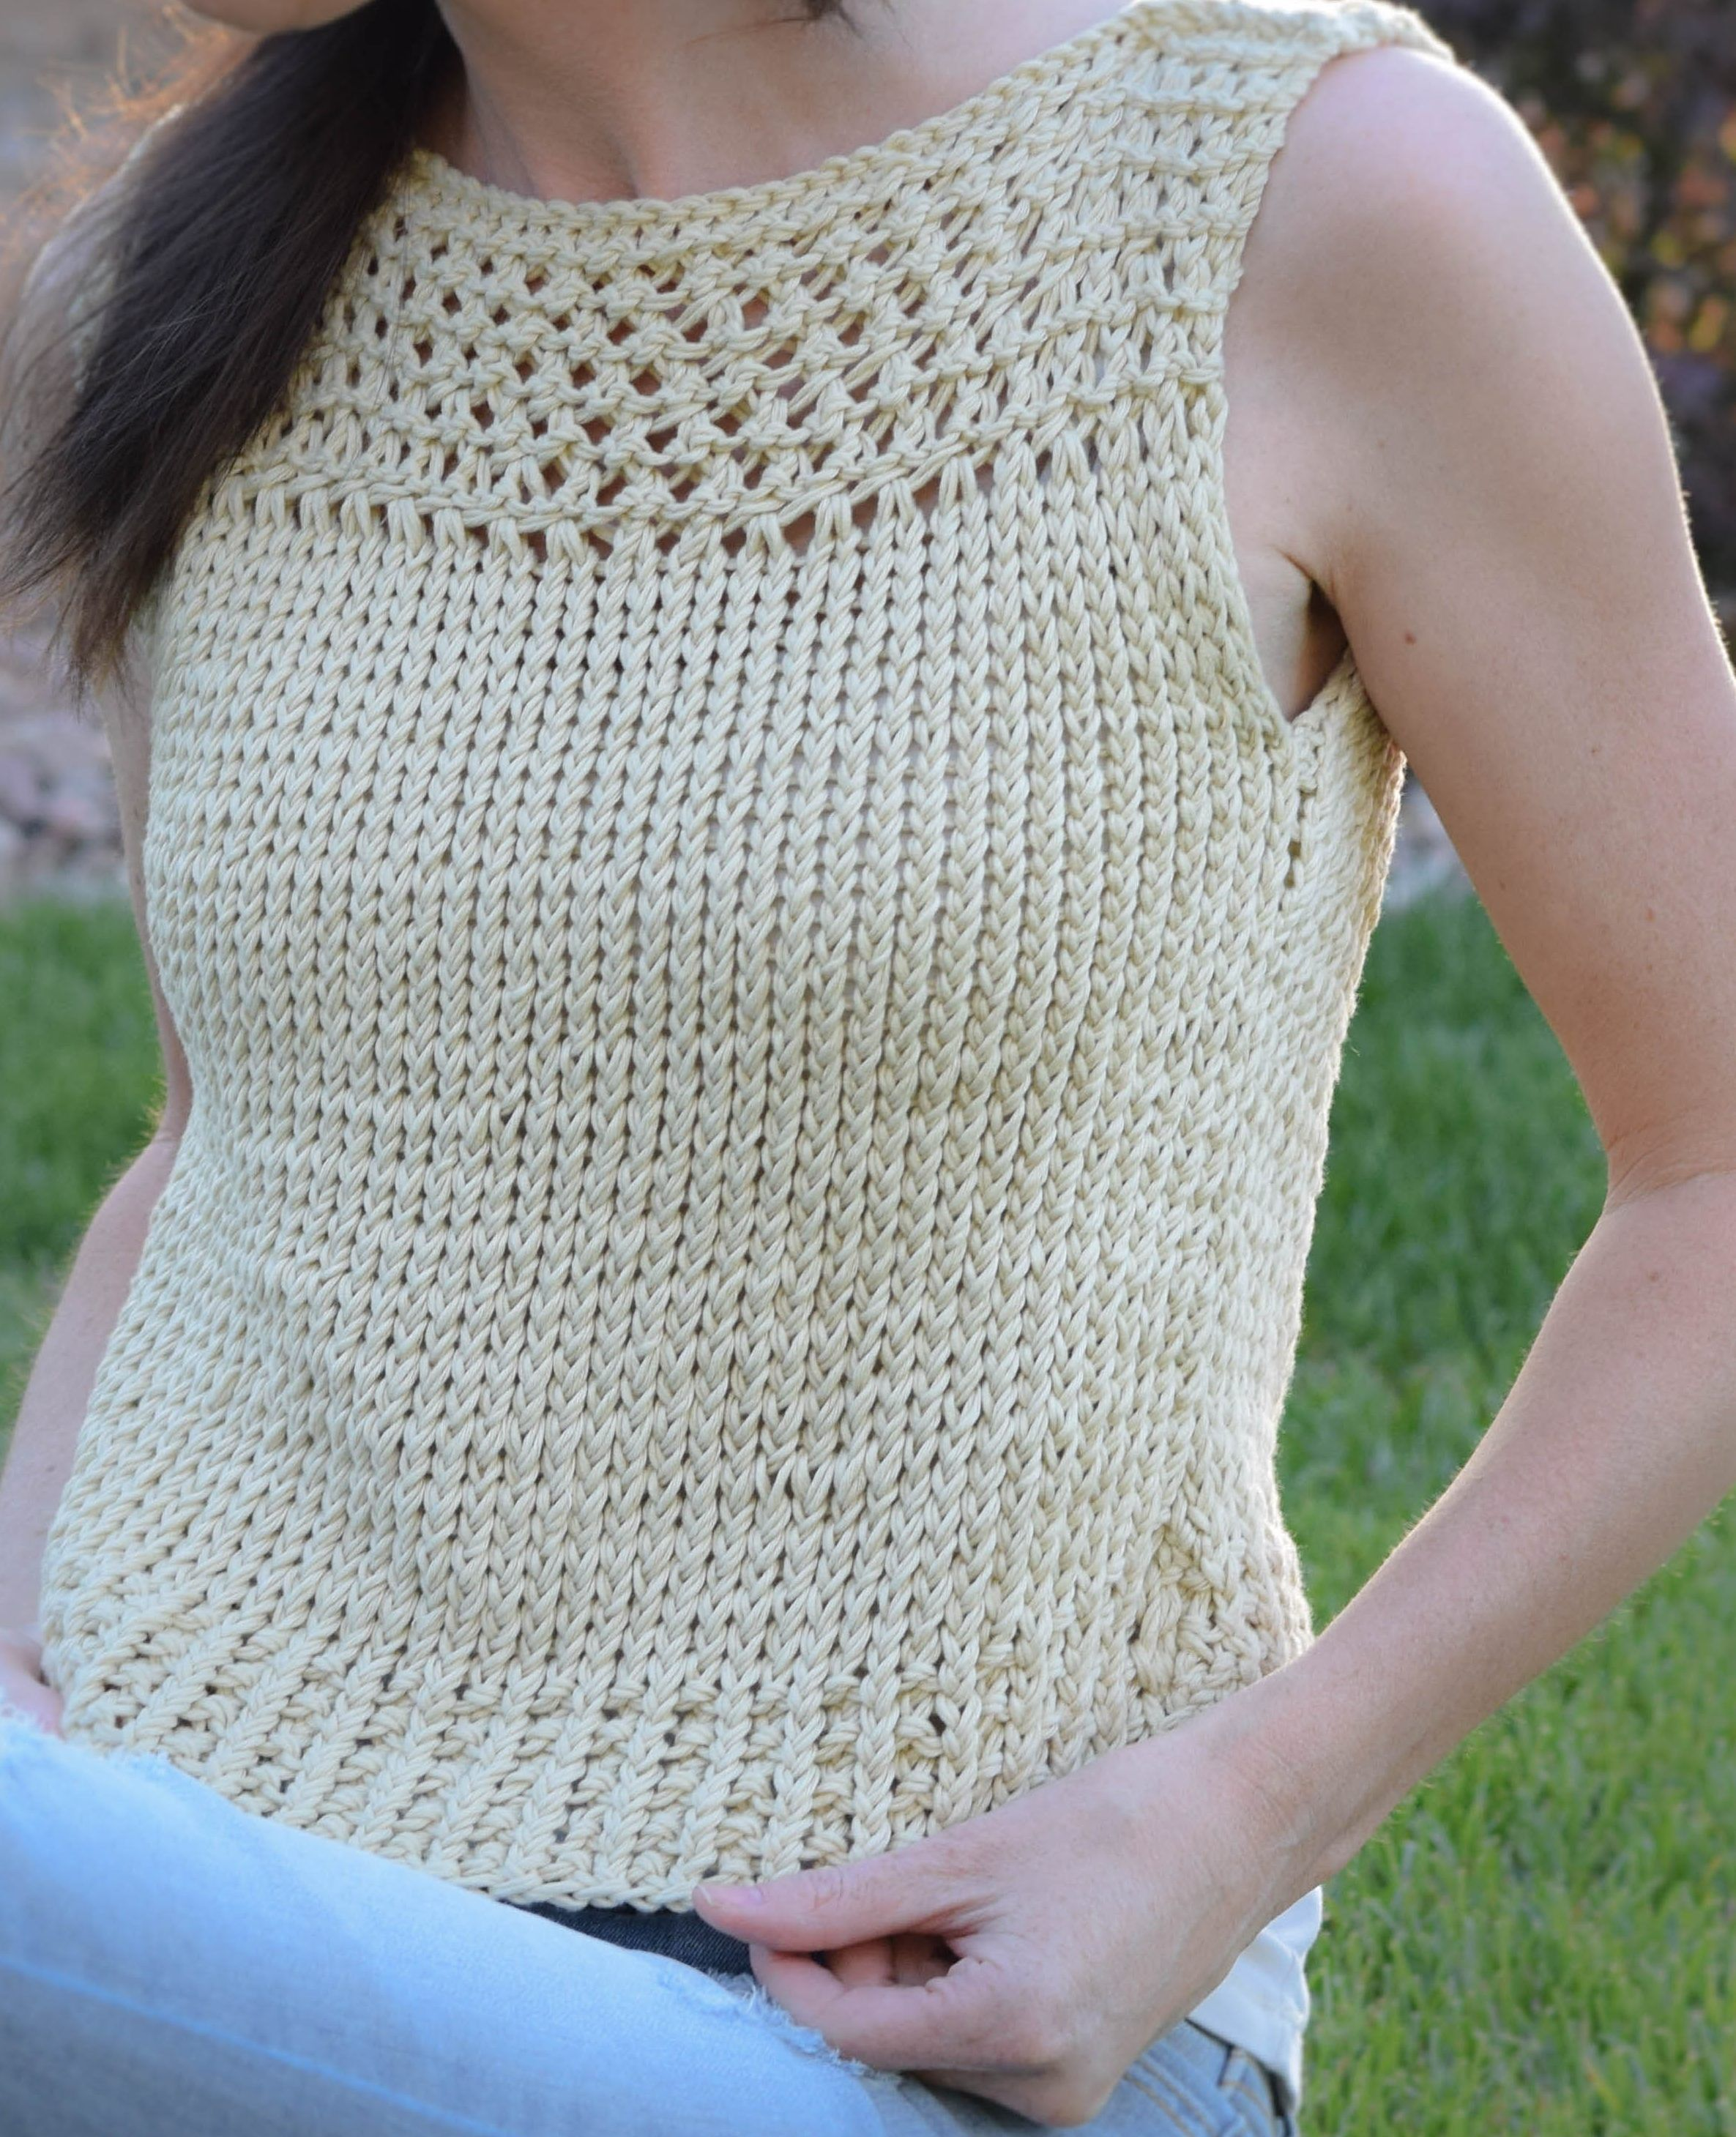 Free knitting pattern for summer vacation easy top jessica of free knitting pattern for summer vacation easy top jessica of mama in a stitch designed this easy sleeveless crop top with mesh yoke thats a fast knit bankloansurffo Gallery